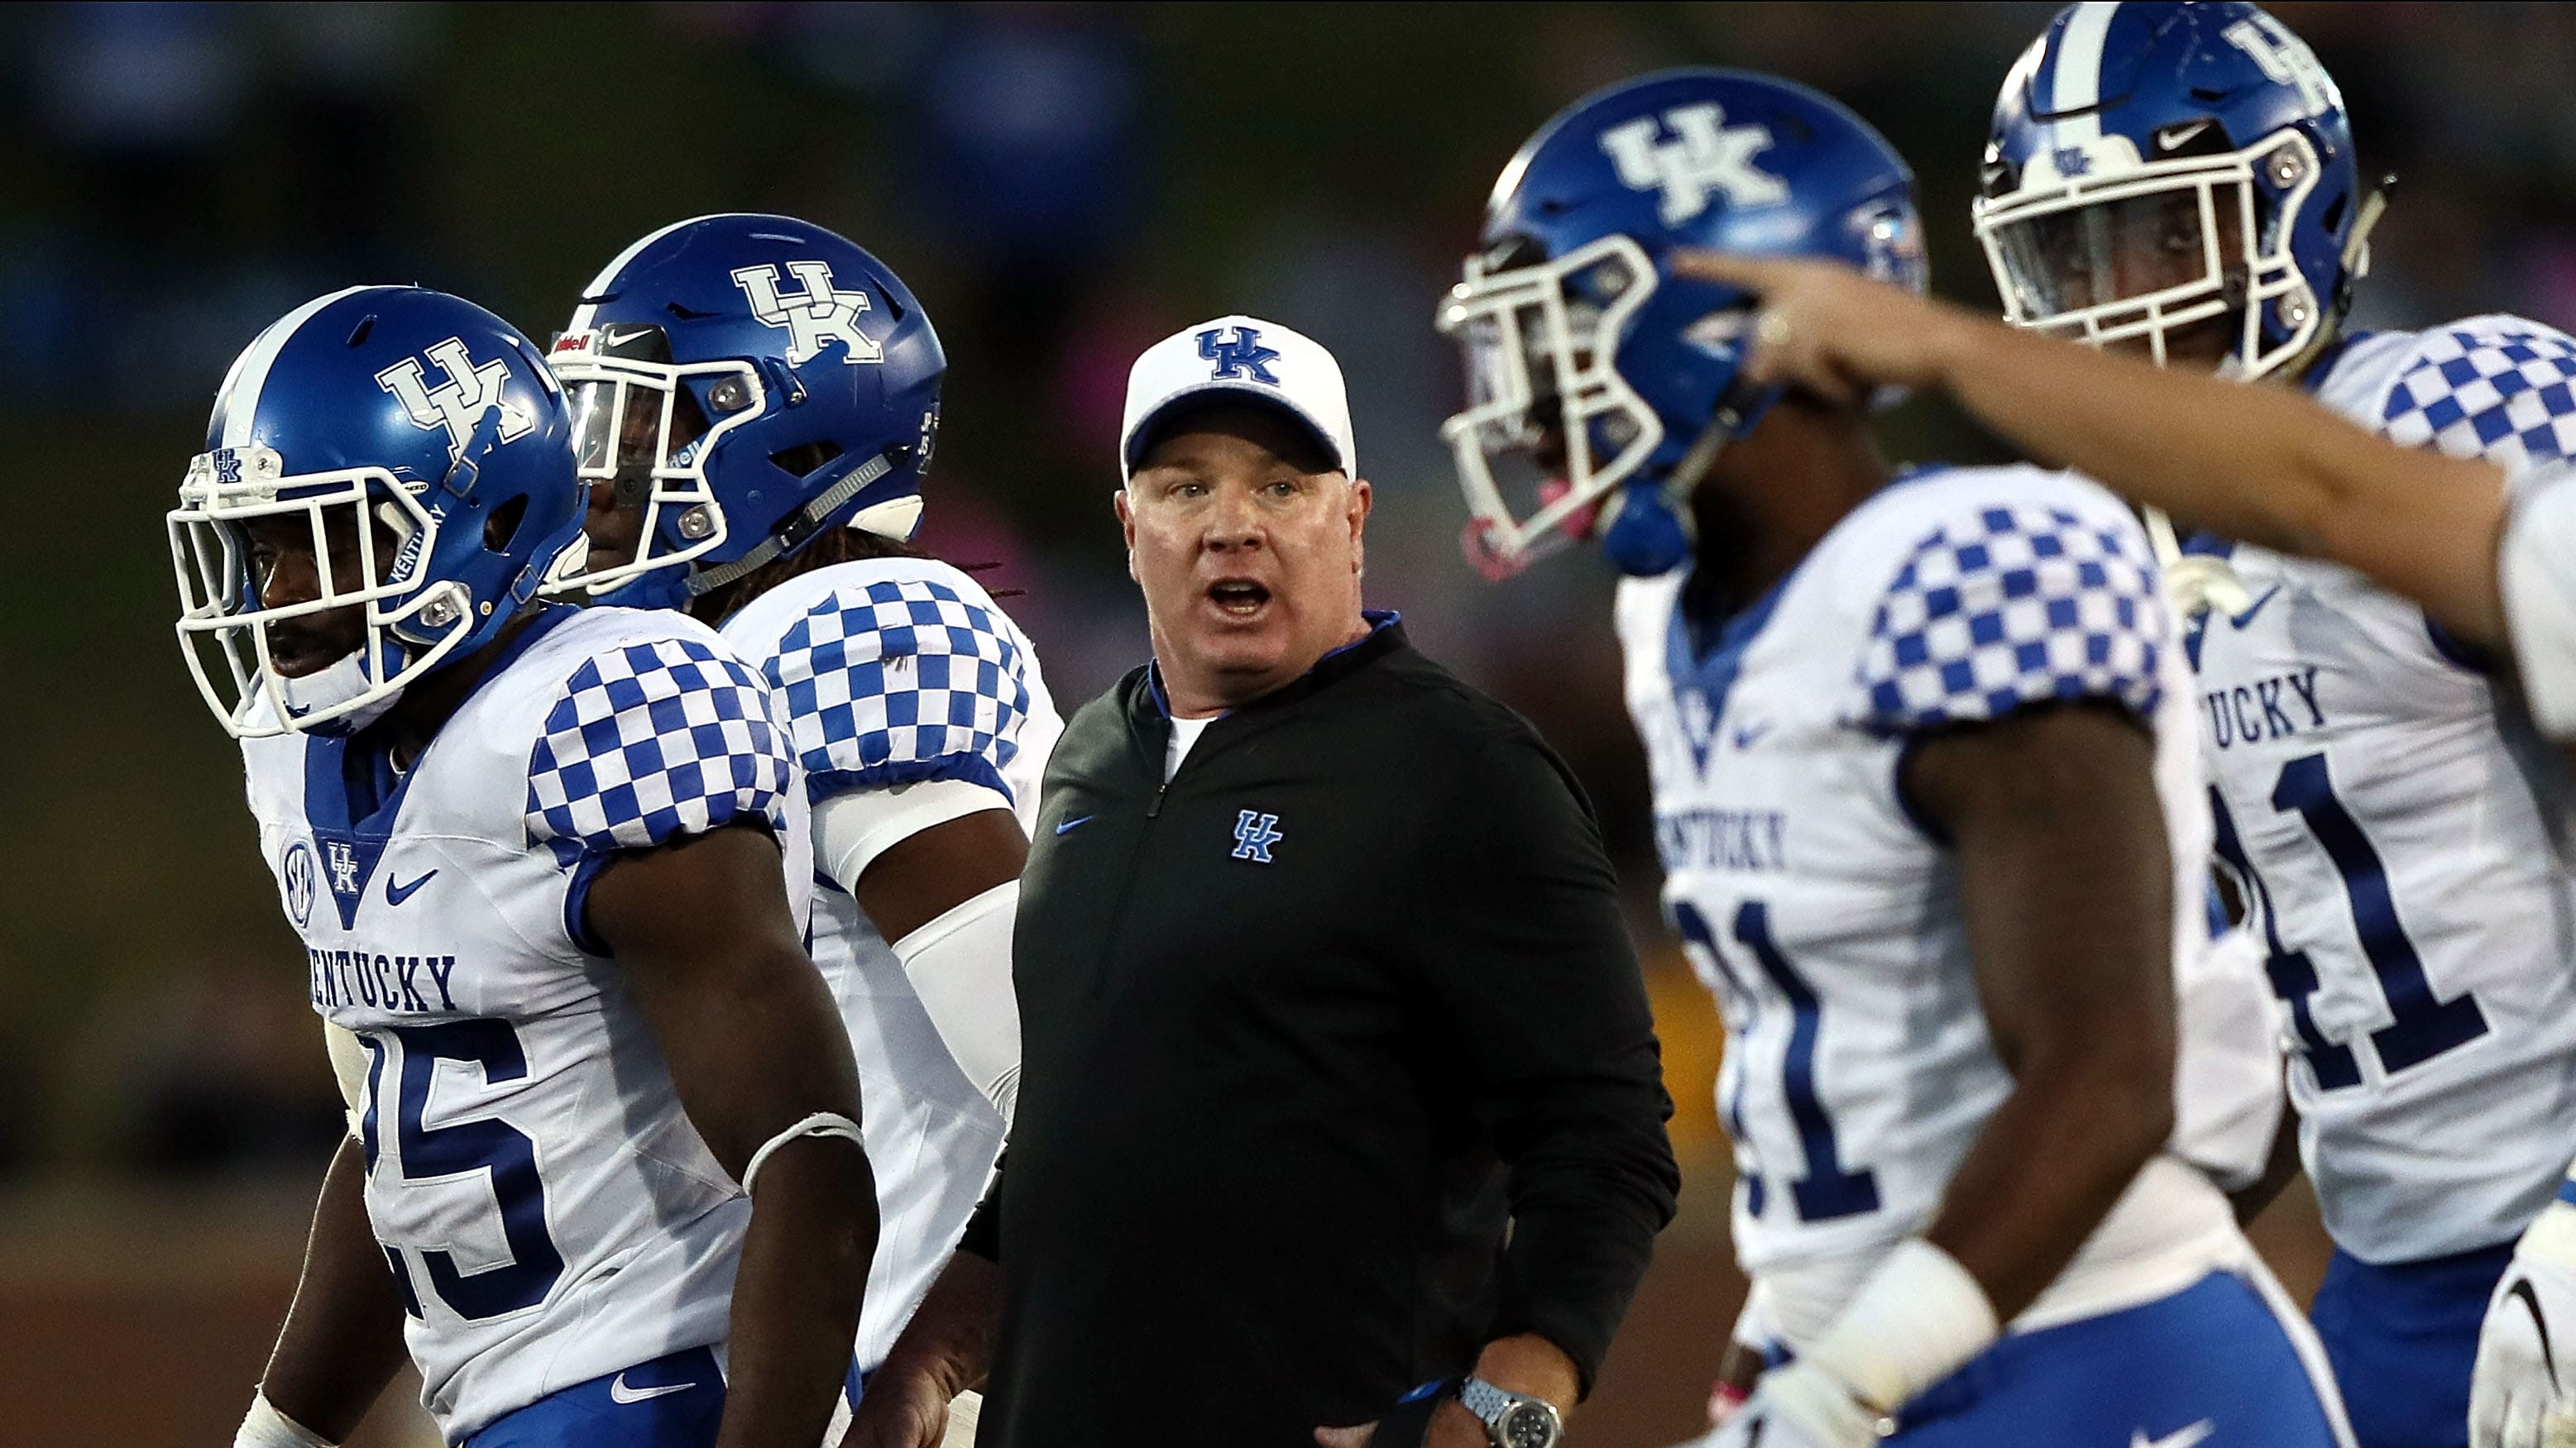 COLUMBIA, MO - OCTOBER 27:  Head coach Mark Stoops of the Kentucky Wildcats talks to players during the game against the Missouri Tigers at Faurot Field/Memorial Stadium on October 27, 2018 in Columbia, Missouri.  (Photo by Jamie Squire/Getty Images)